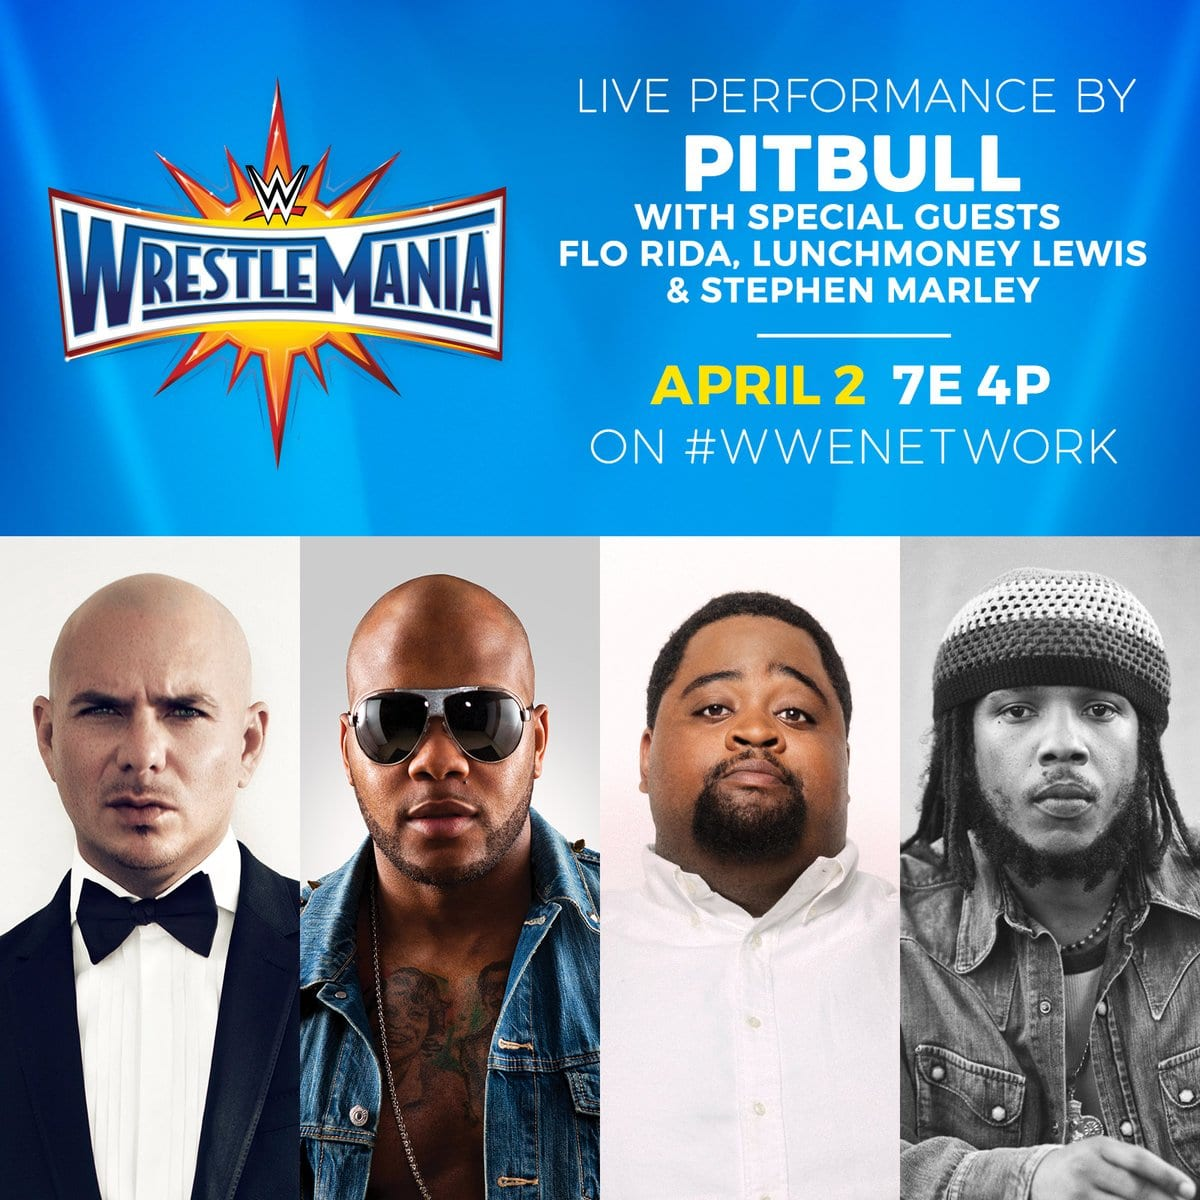 Pitbull to perform at WrestleMania 33